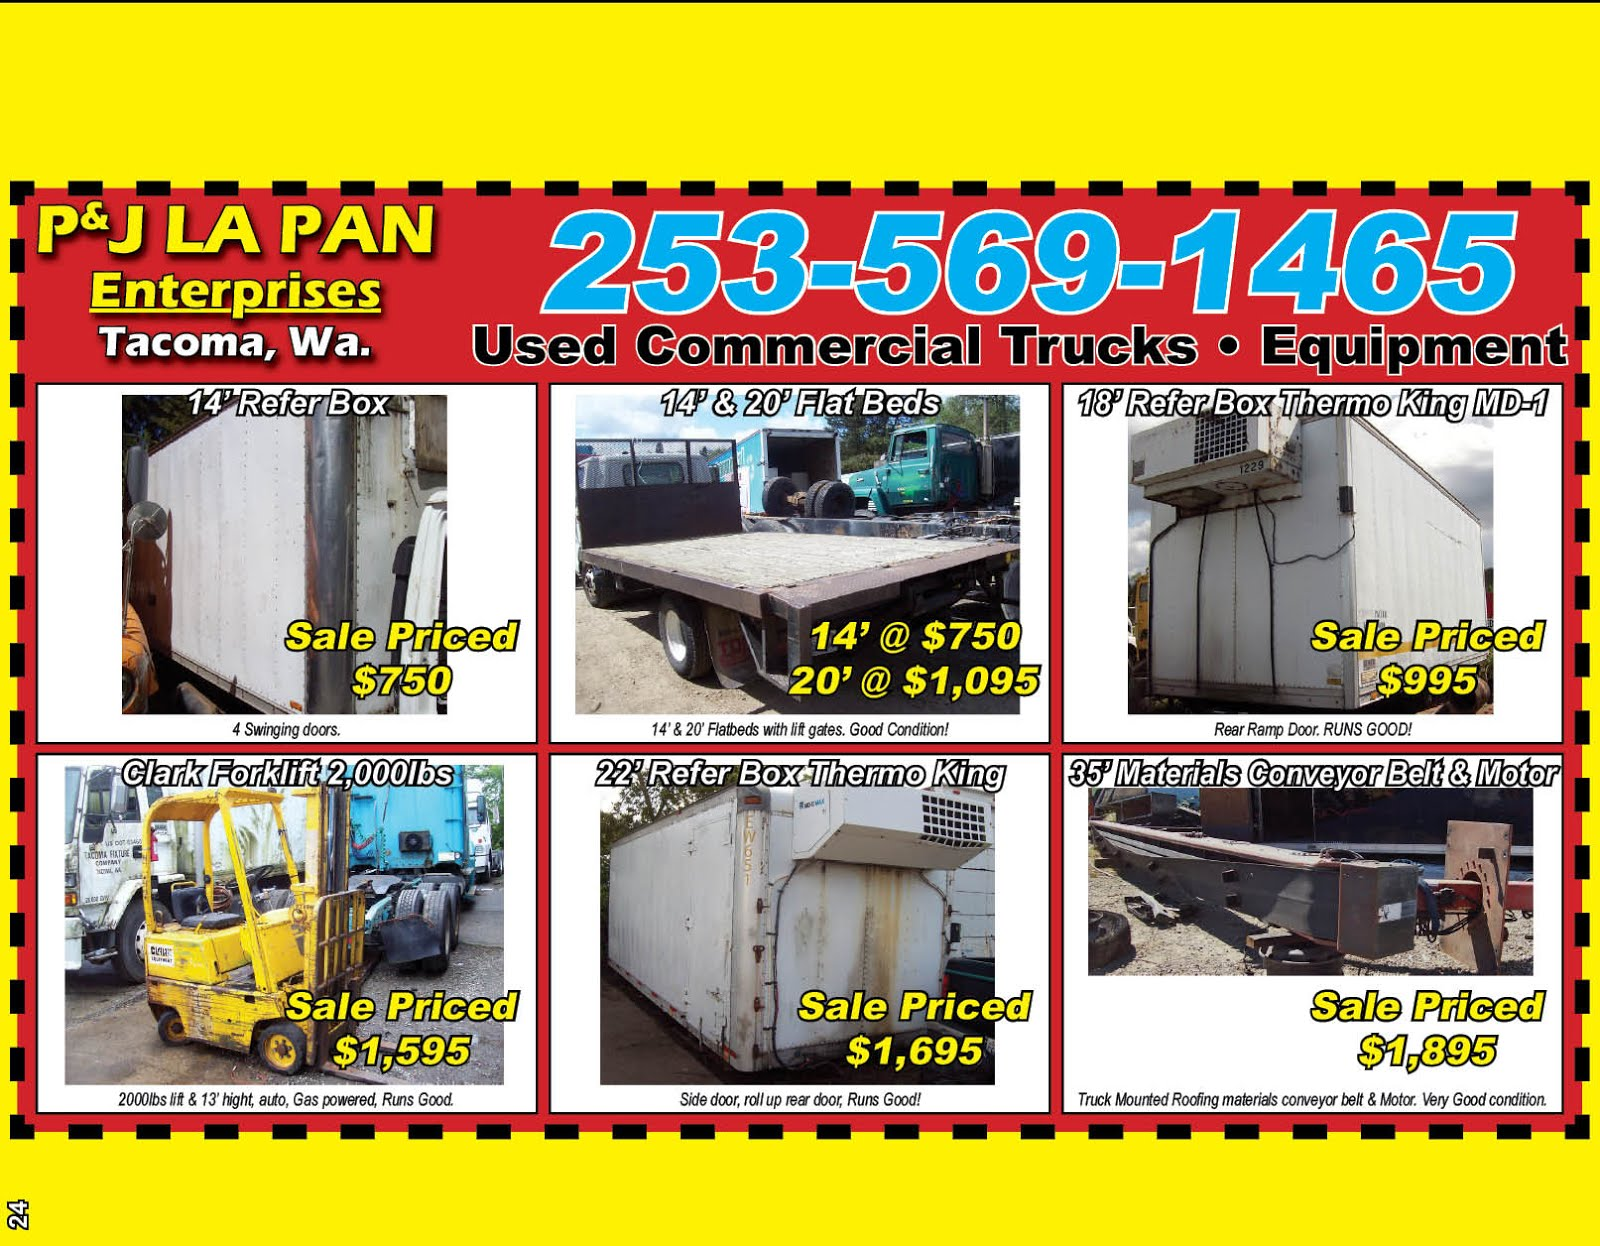 P & J LaPan Enterprises